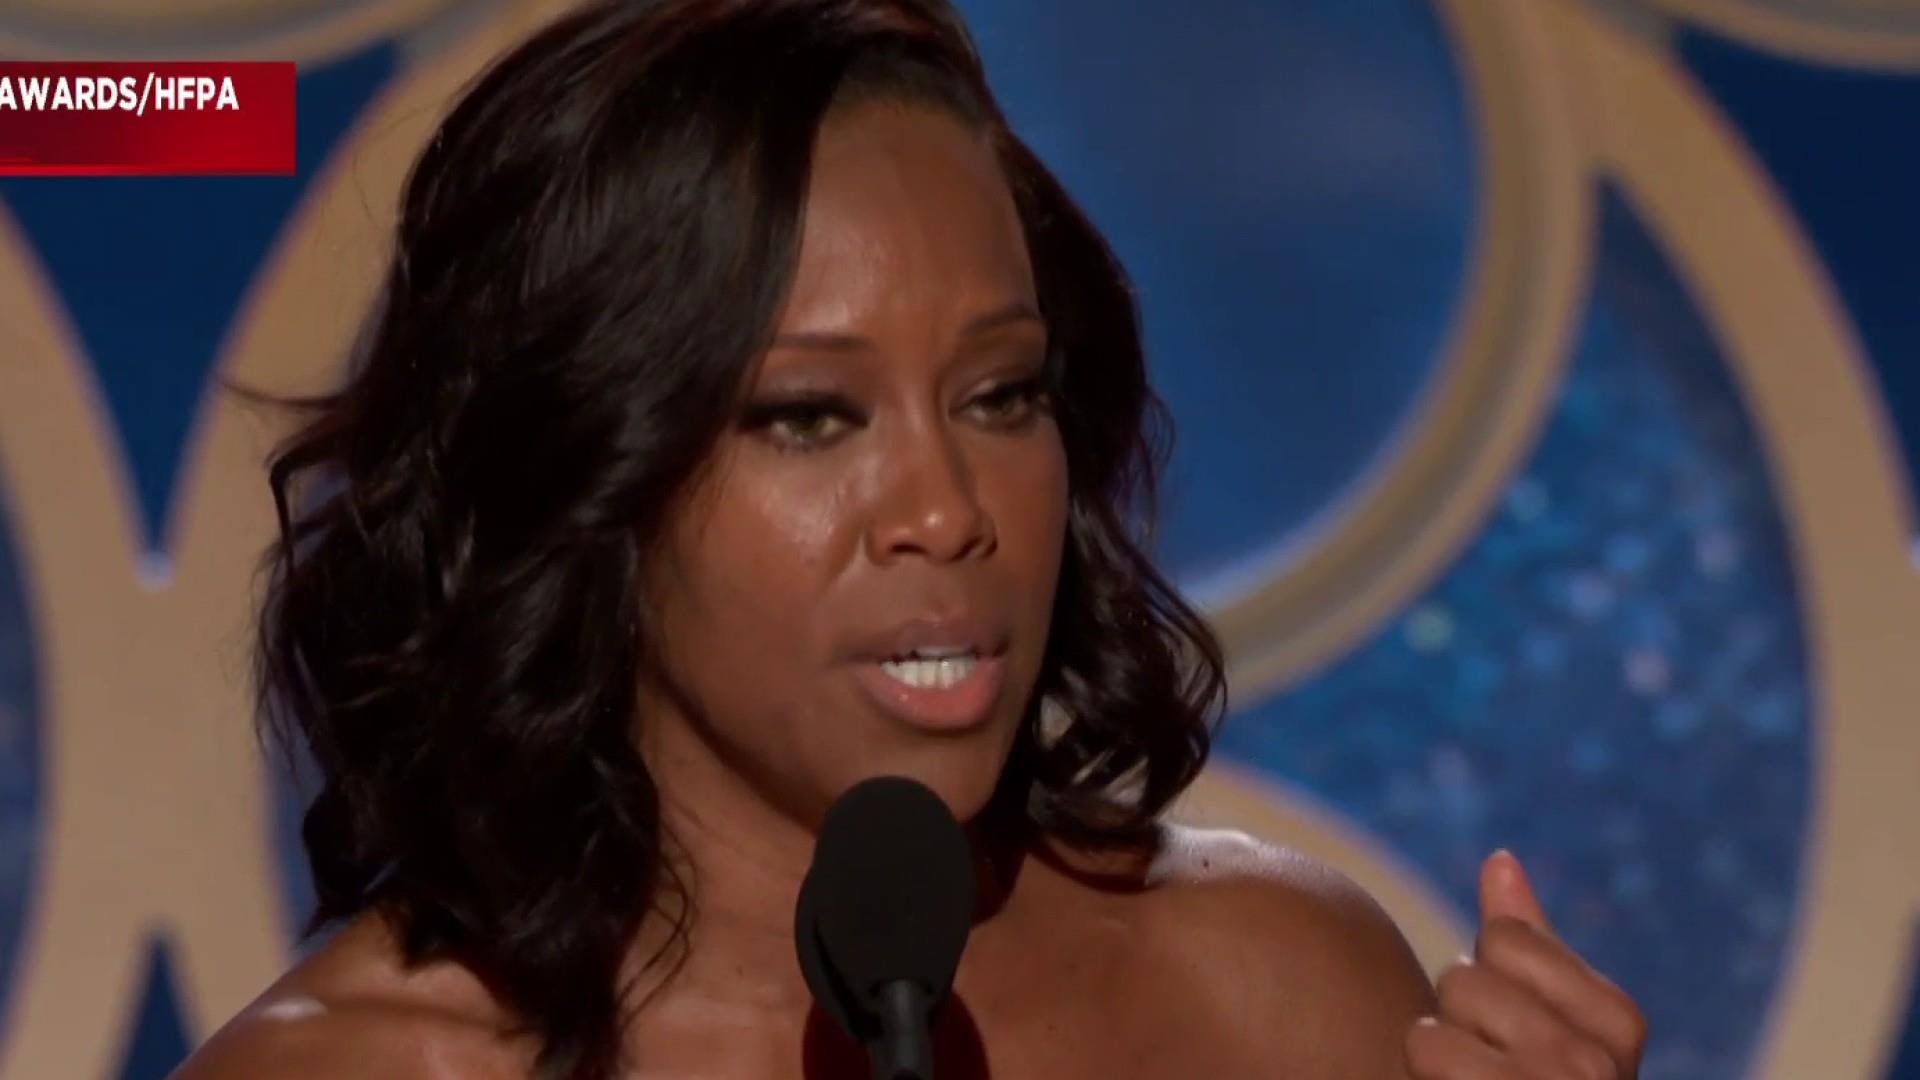 #GoodNewsRUHLES: Regina King challenges Hollywood to hire more women